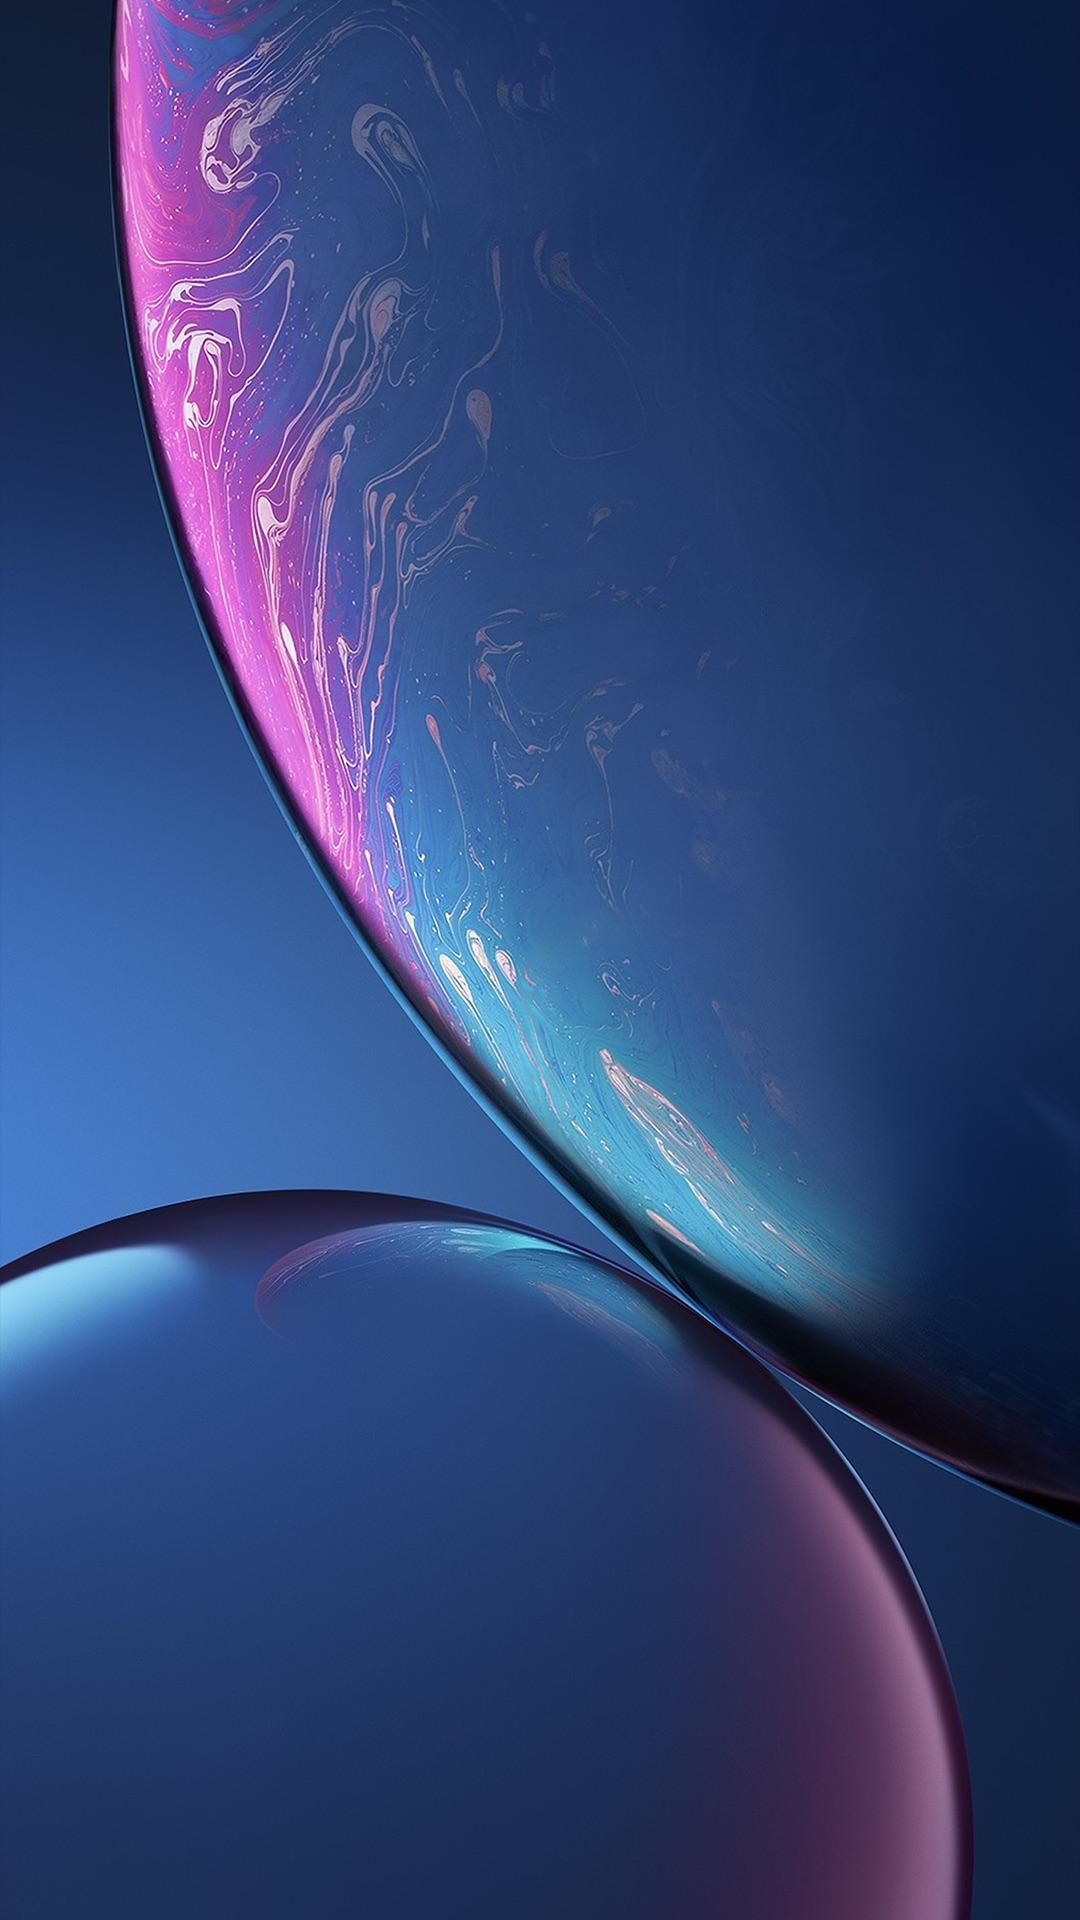 Iphone Xr Wallpaper Wallpaper In 2019 Moving Wallpaper Iphone